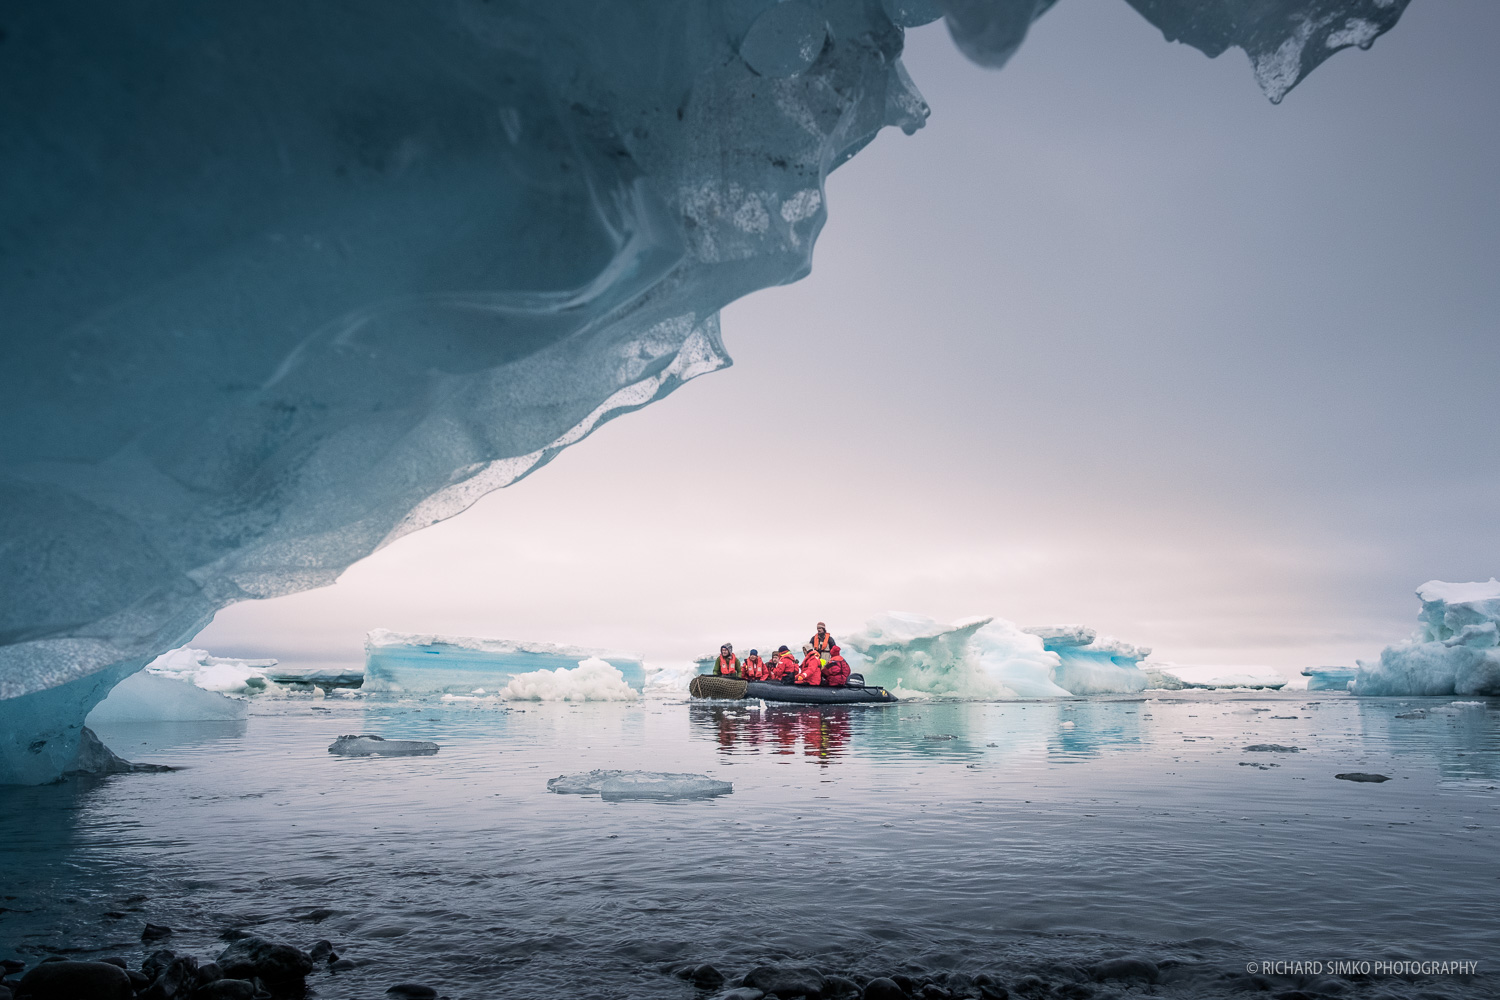 The first batch voyage crew arrives to Vega Island landing site finding their way between constantly moving ice.